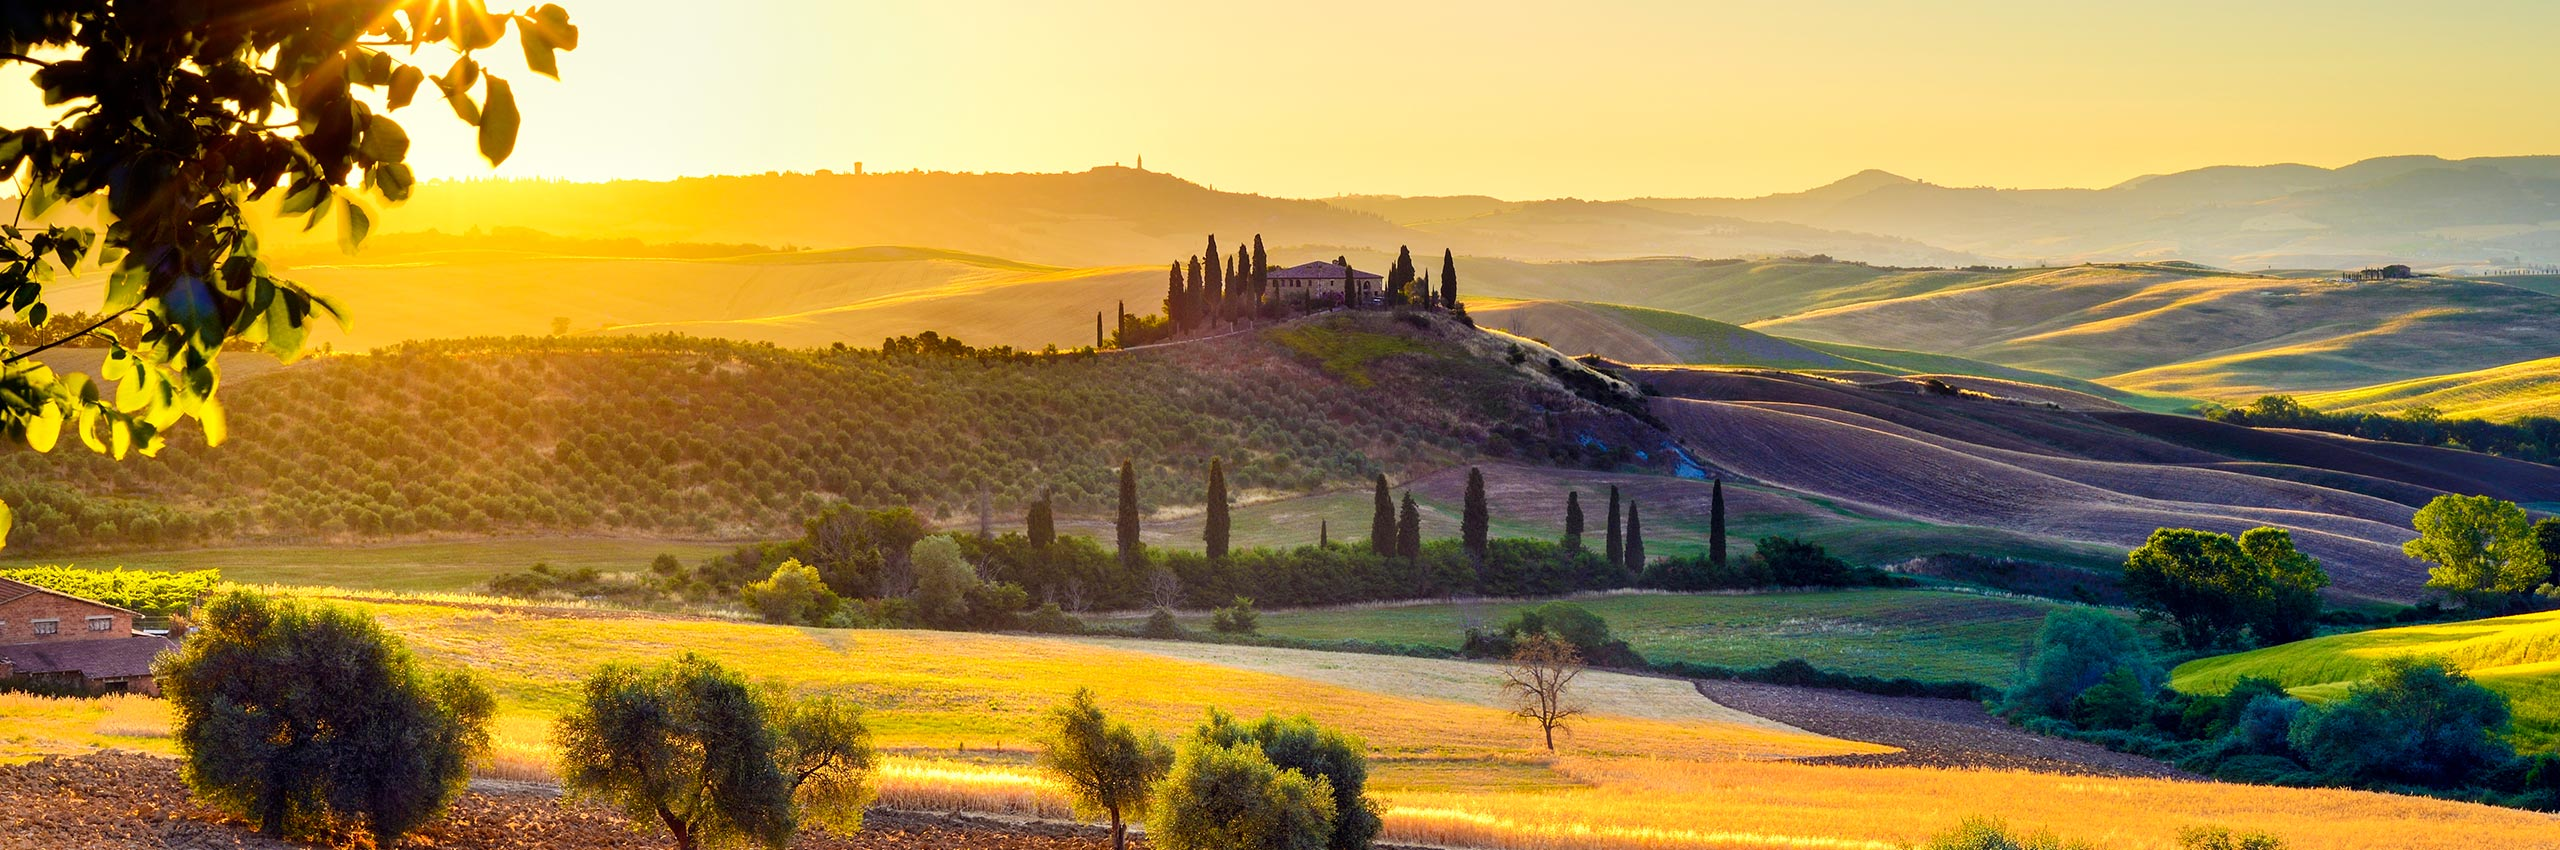 SIM-498347 | Italy/Tuscany, Siena district, Orcia Valley | © Francesco Carovillano/4Corners